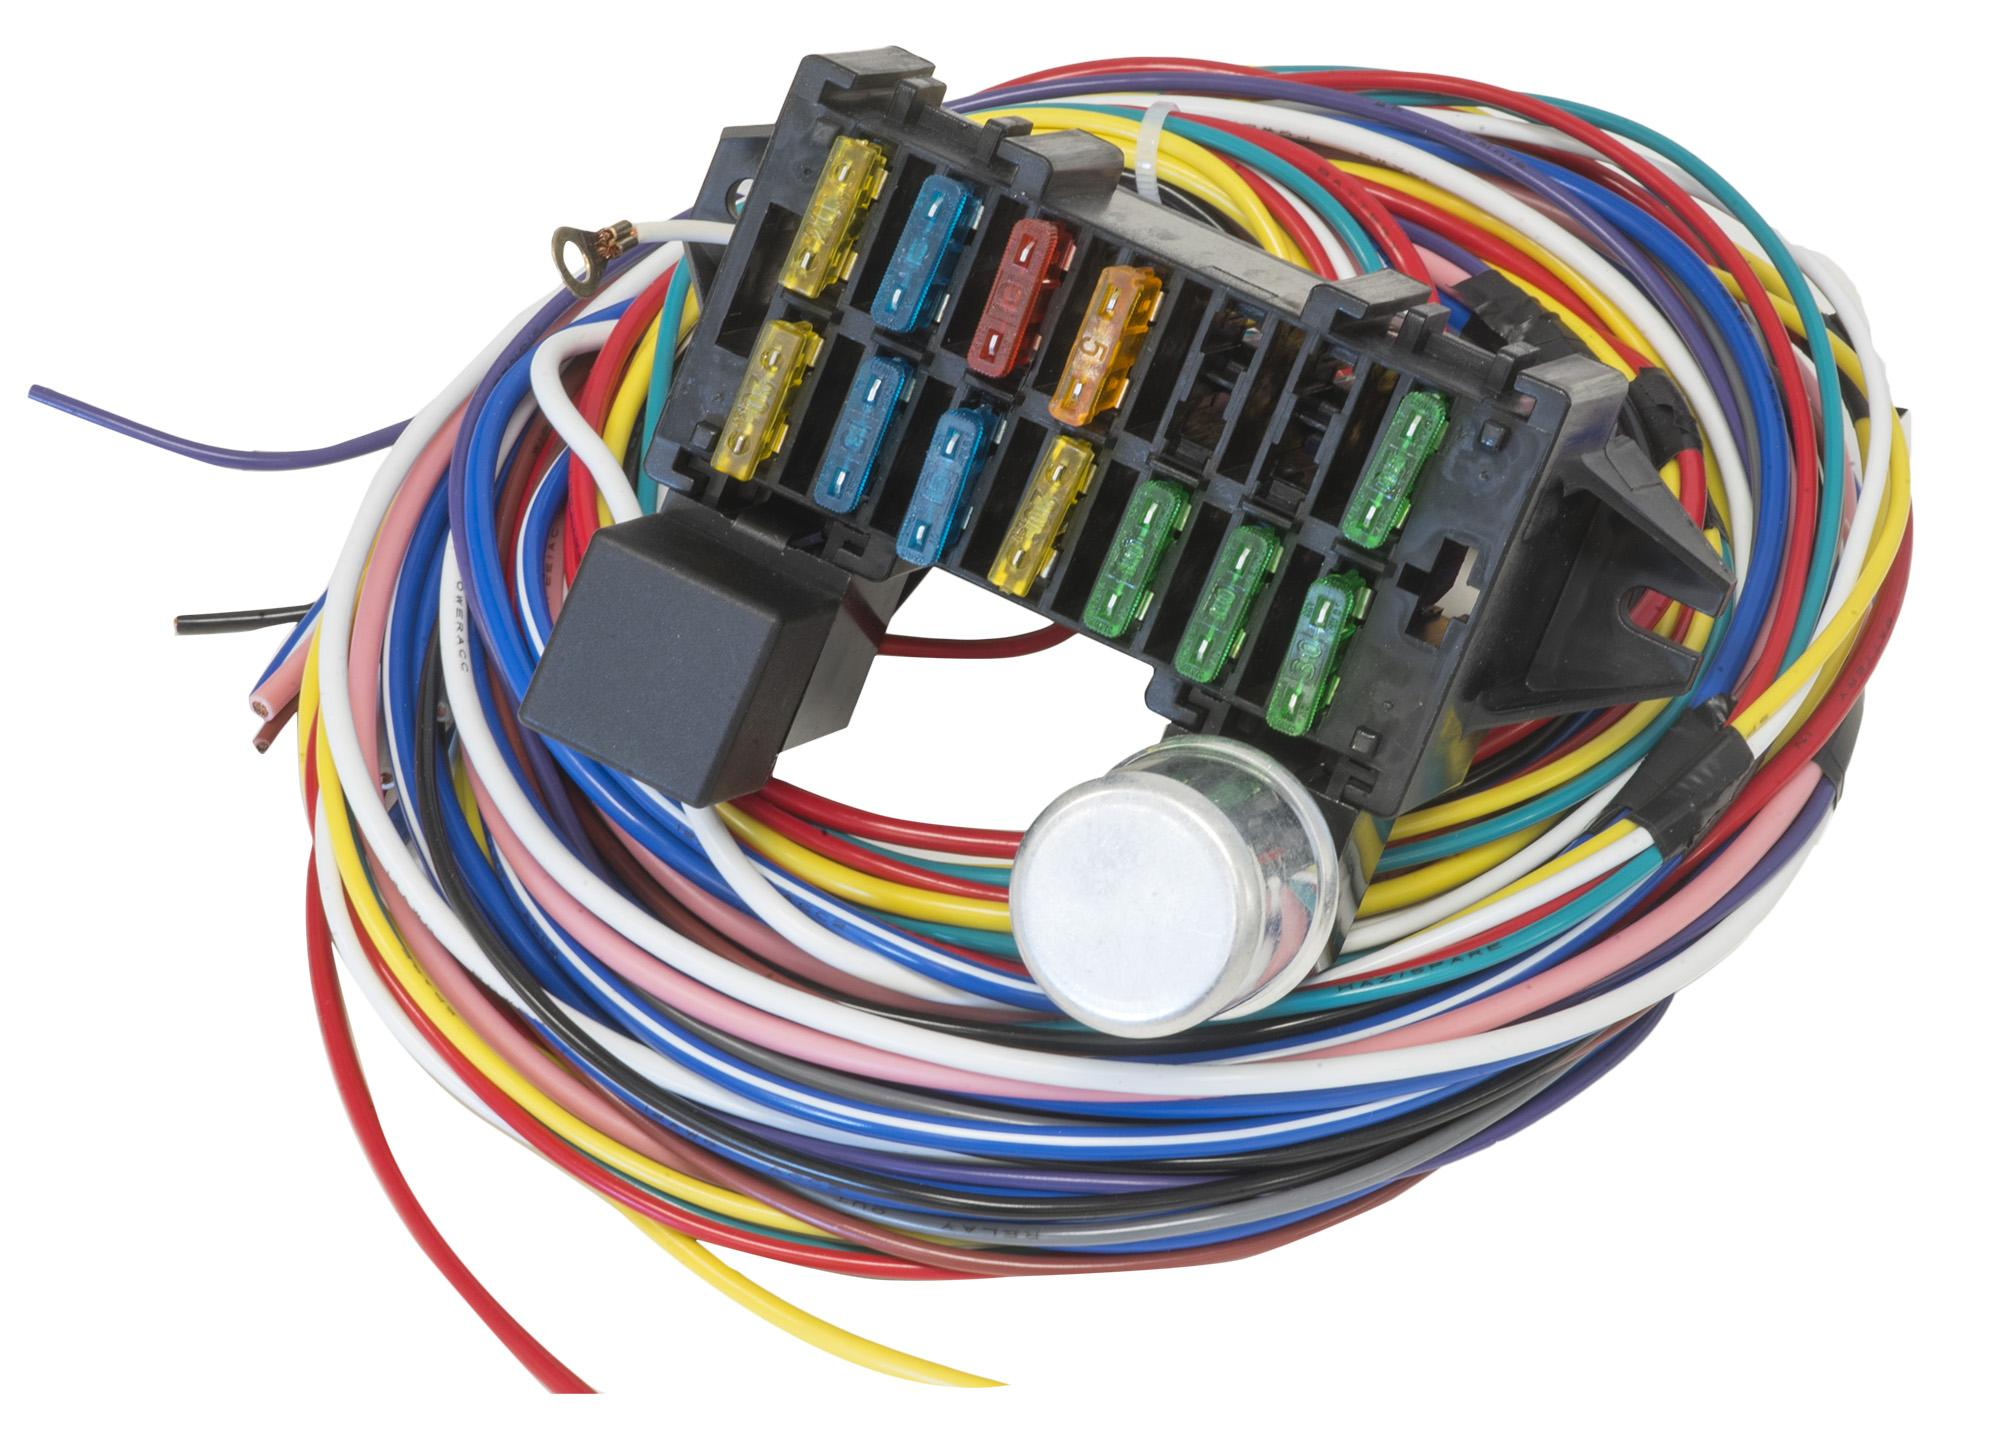 [DIAGRAM_38EU]  12 circuit Universal Wiring Harness kit - universal model - WIRESTEC (China  Manufacturer) - Cable Wire - Machine Hardware Products - | 12 Circuit Universal Wiring Harness |  | DIYTrade